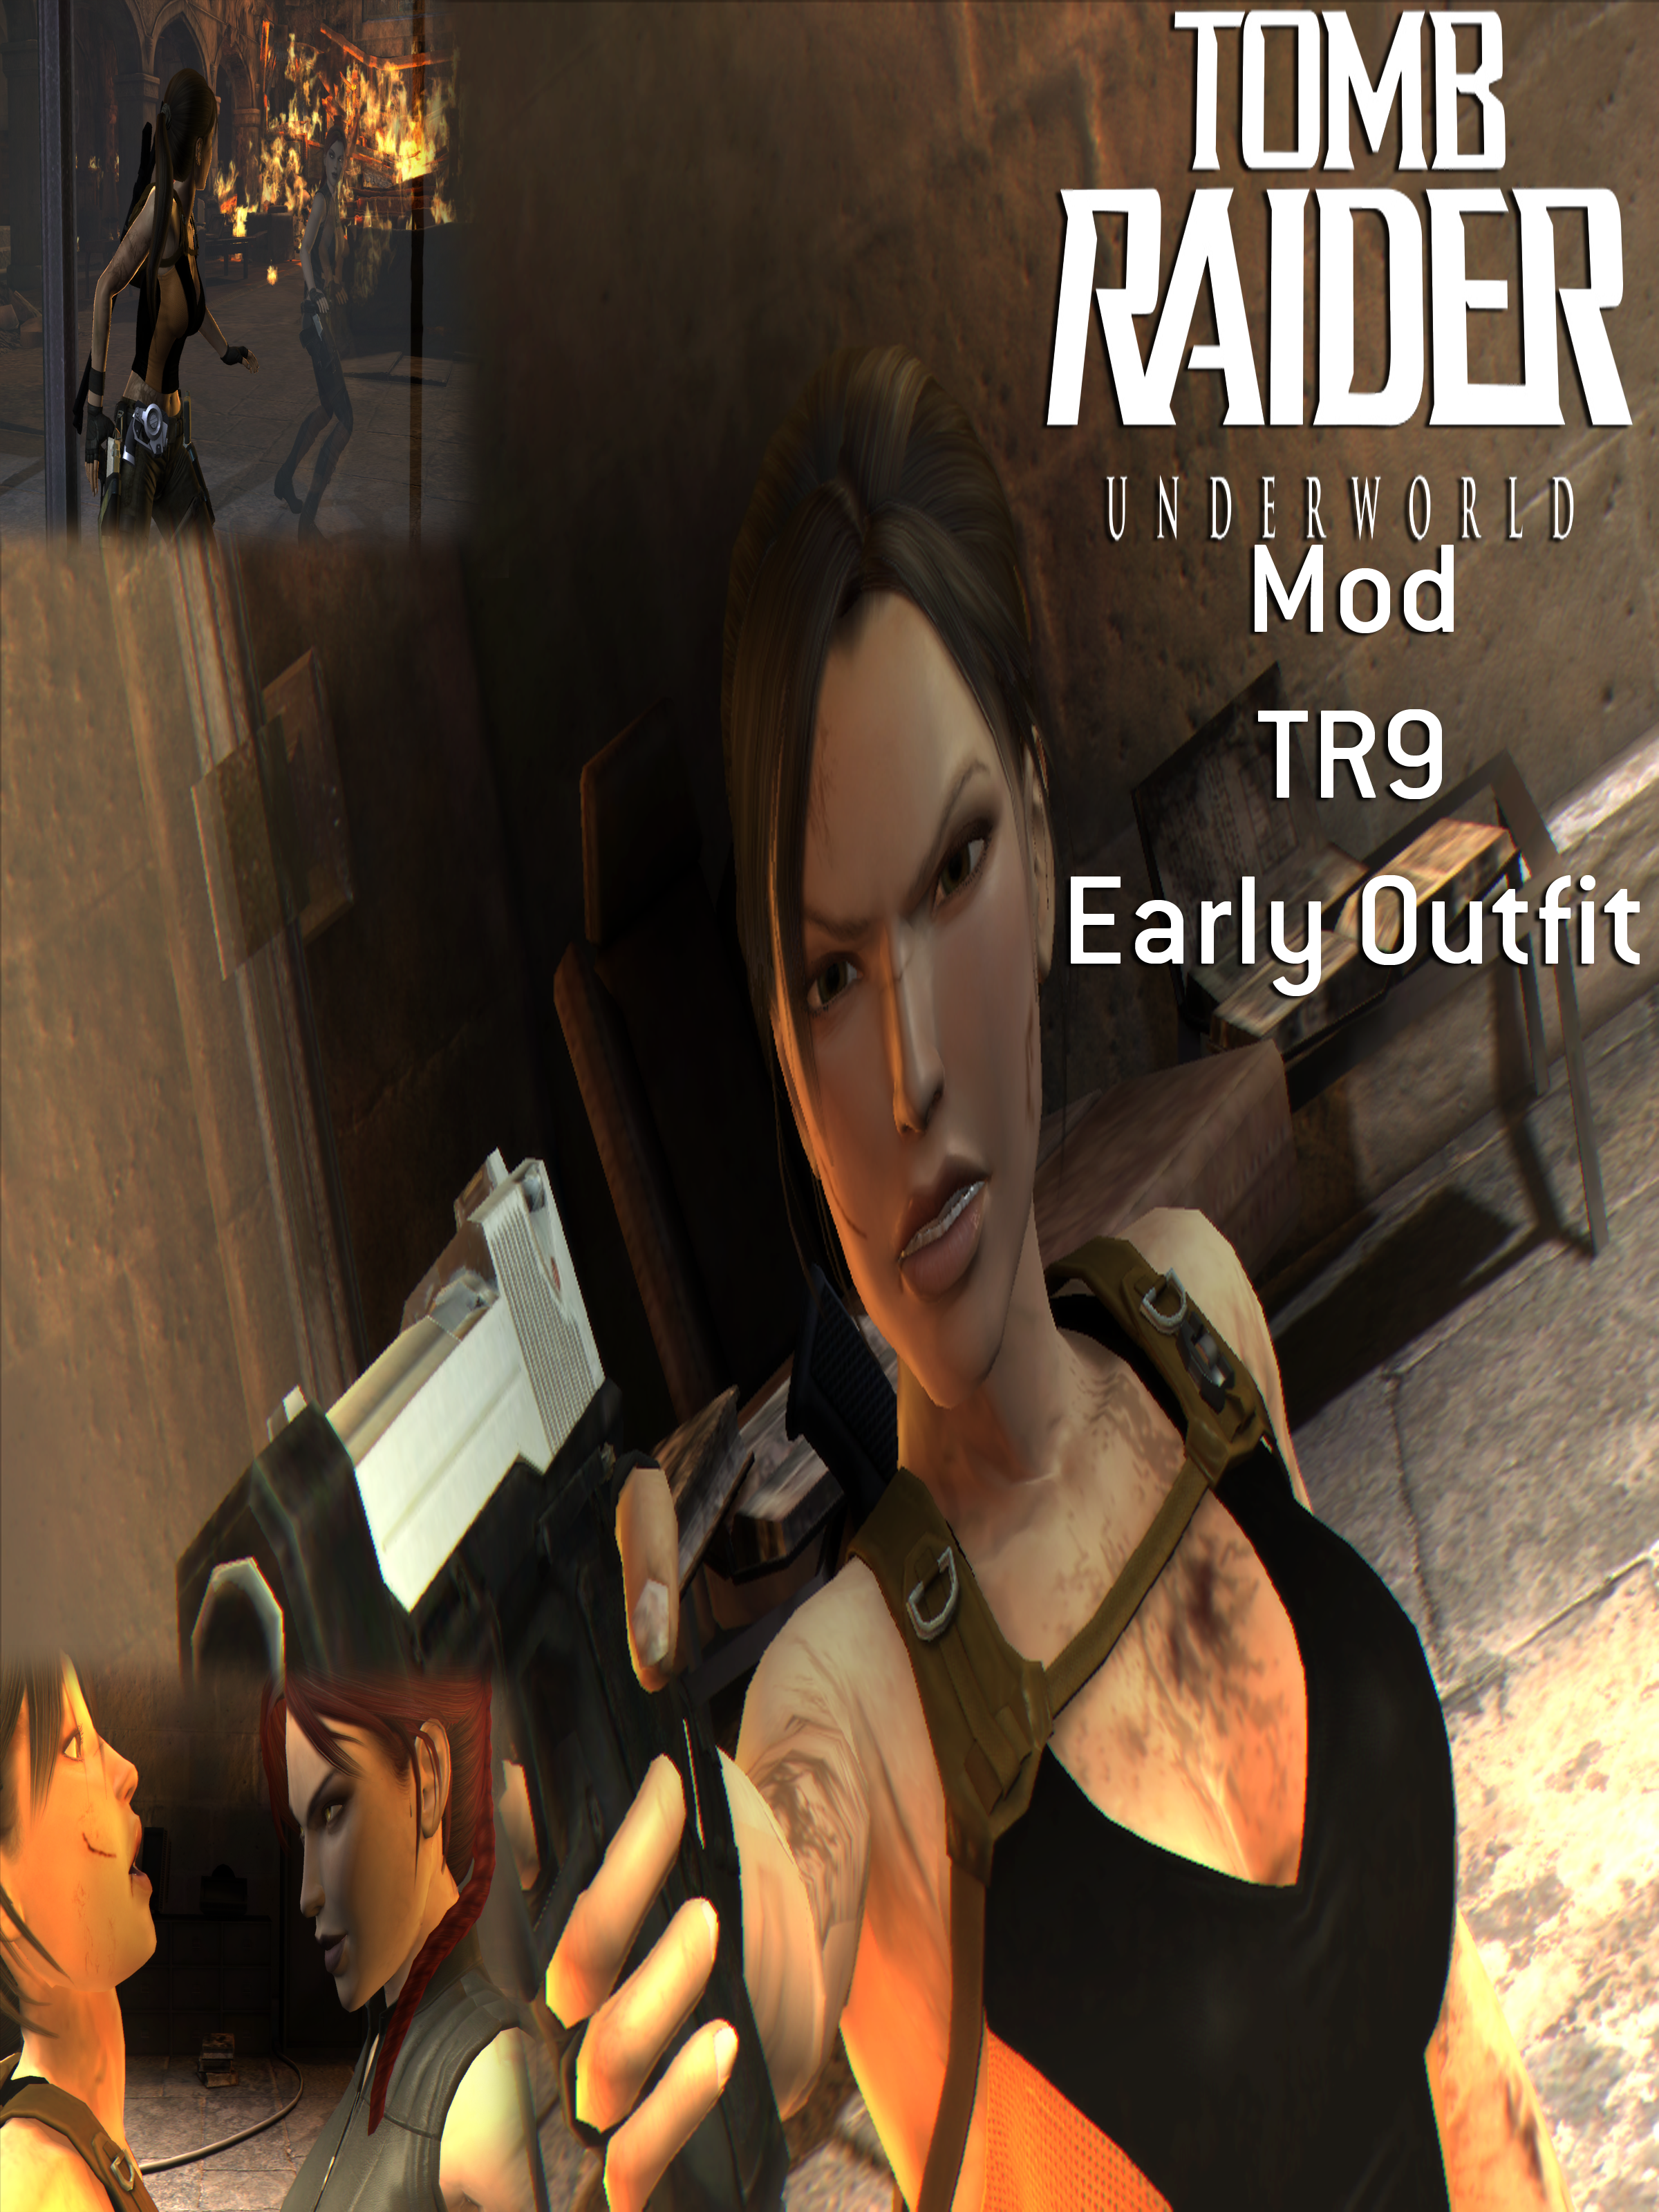 Tomb raider underworld bigger boivs mod erotic clips